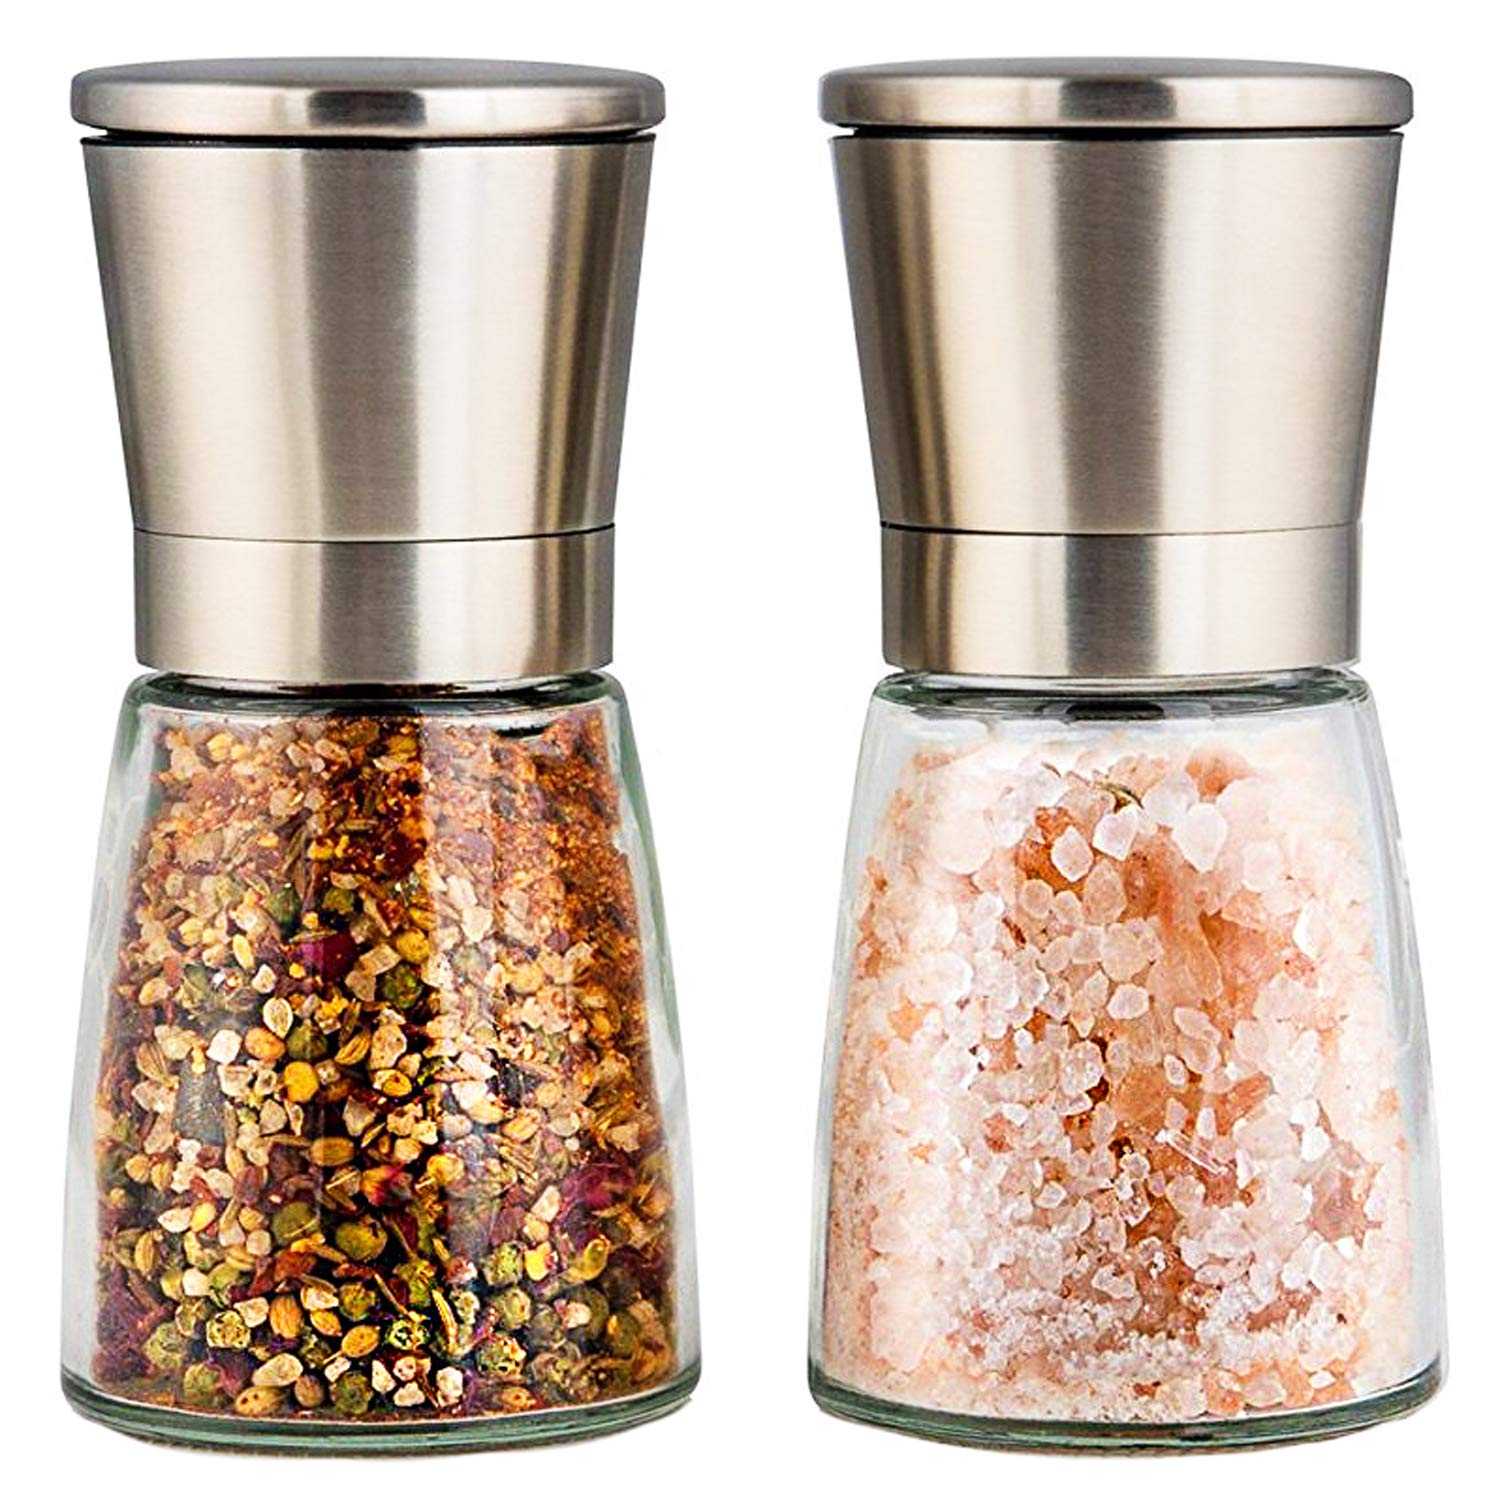 Salt and Pepper Shakers with Silicon Stand (2 pcs) - Premium Salt and Pepper Grinder Set with Adjustable Ceramic Coarseness - Brushed Stainless Steel and Glass Body Mill Set by Modetro